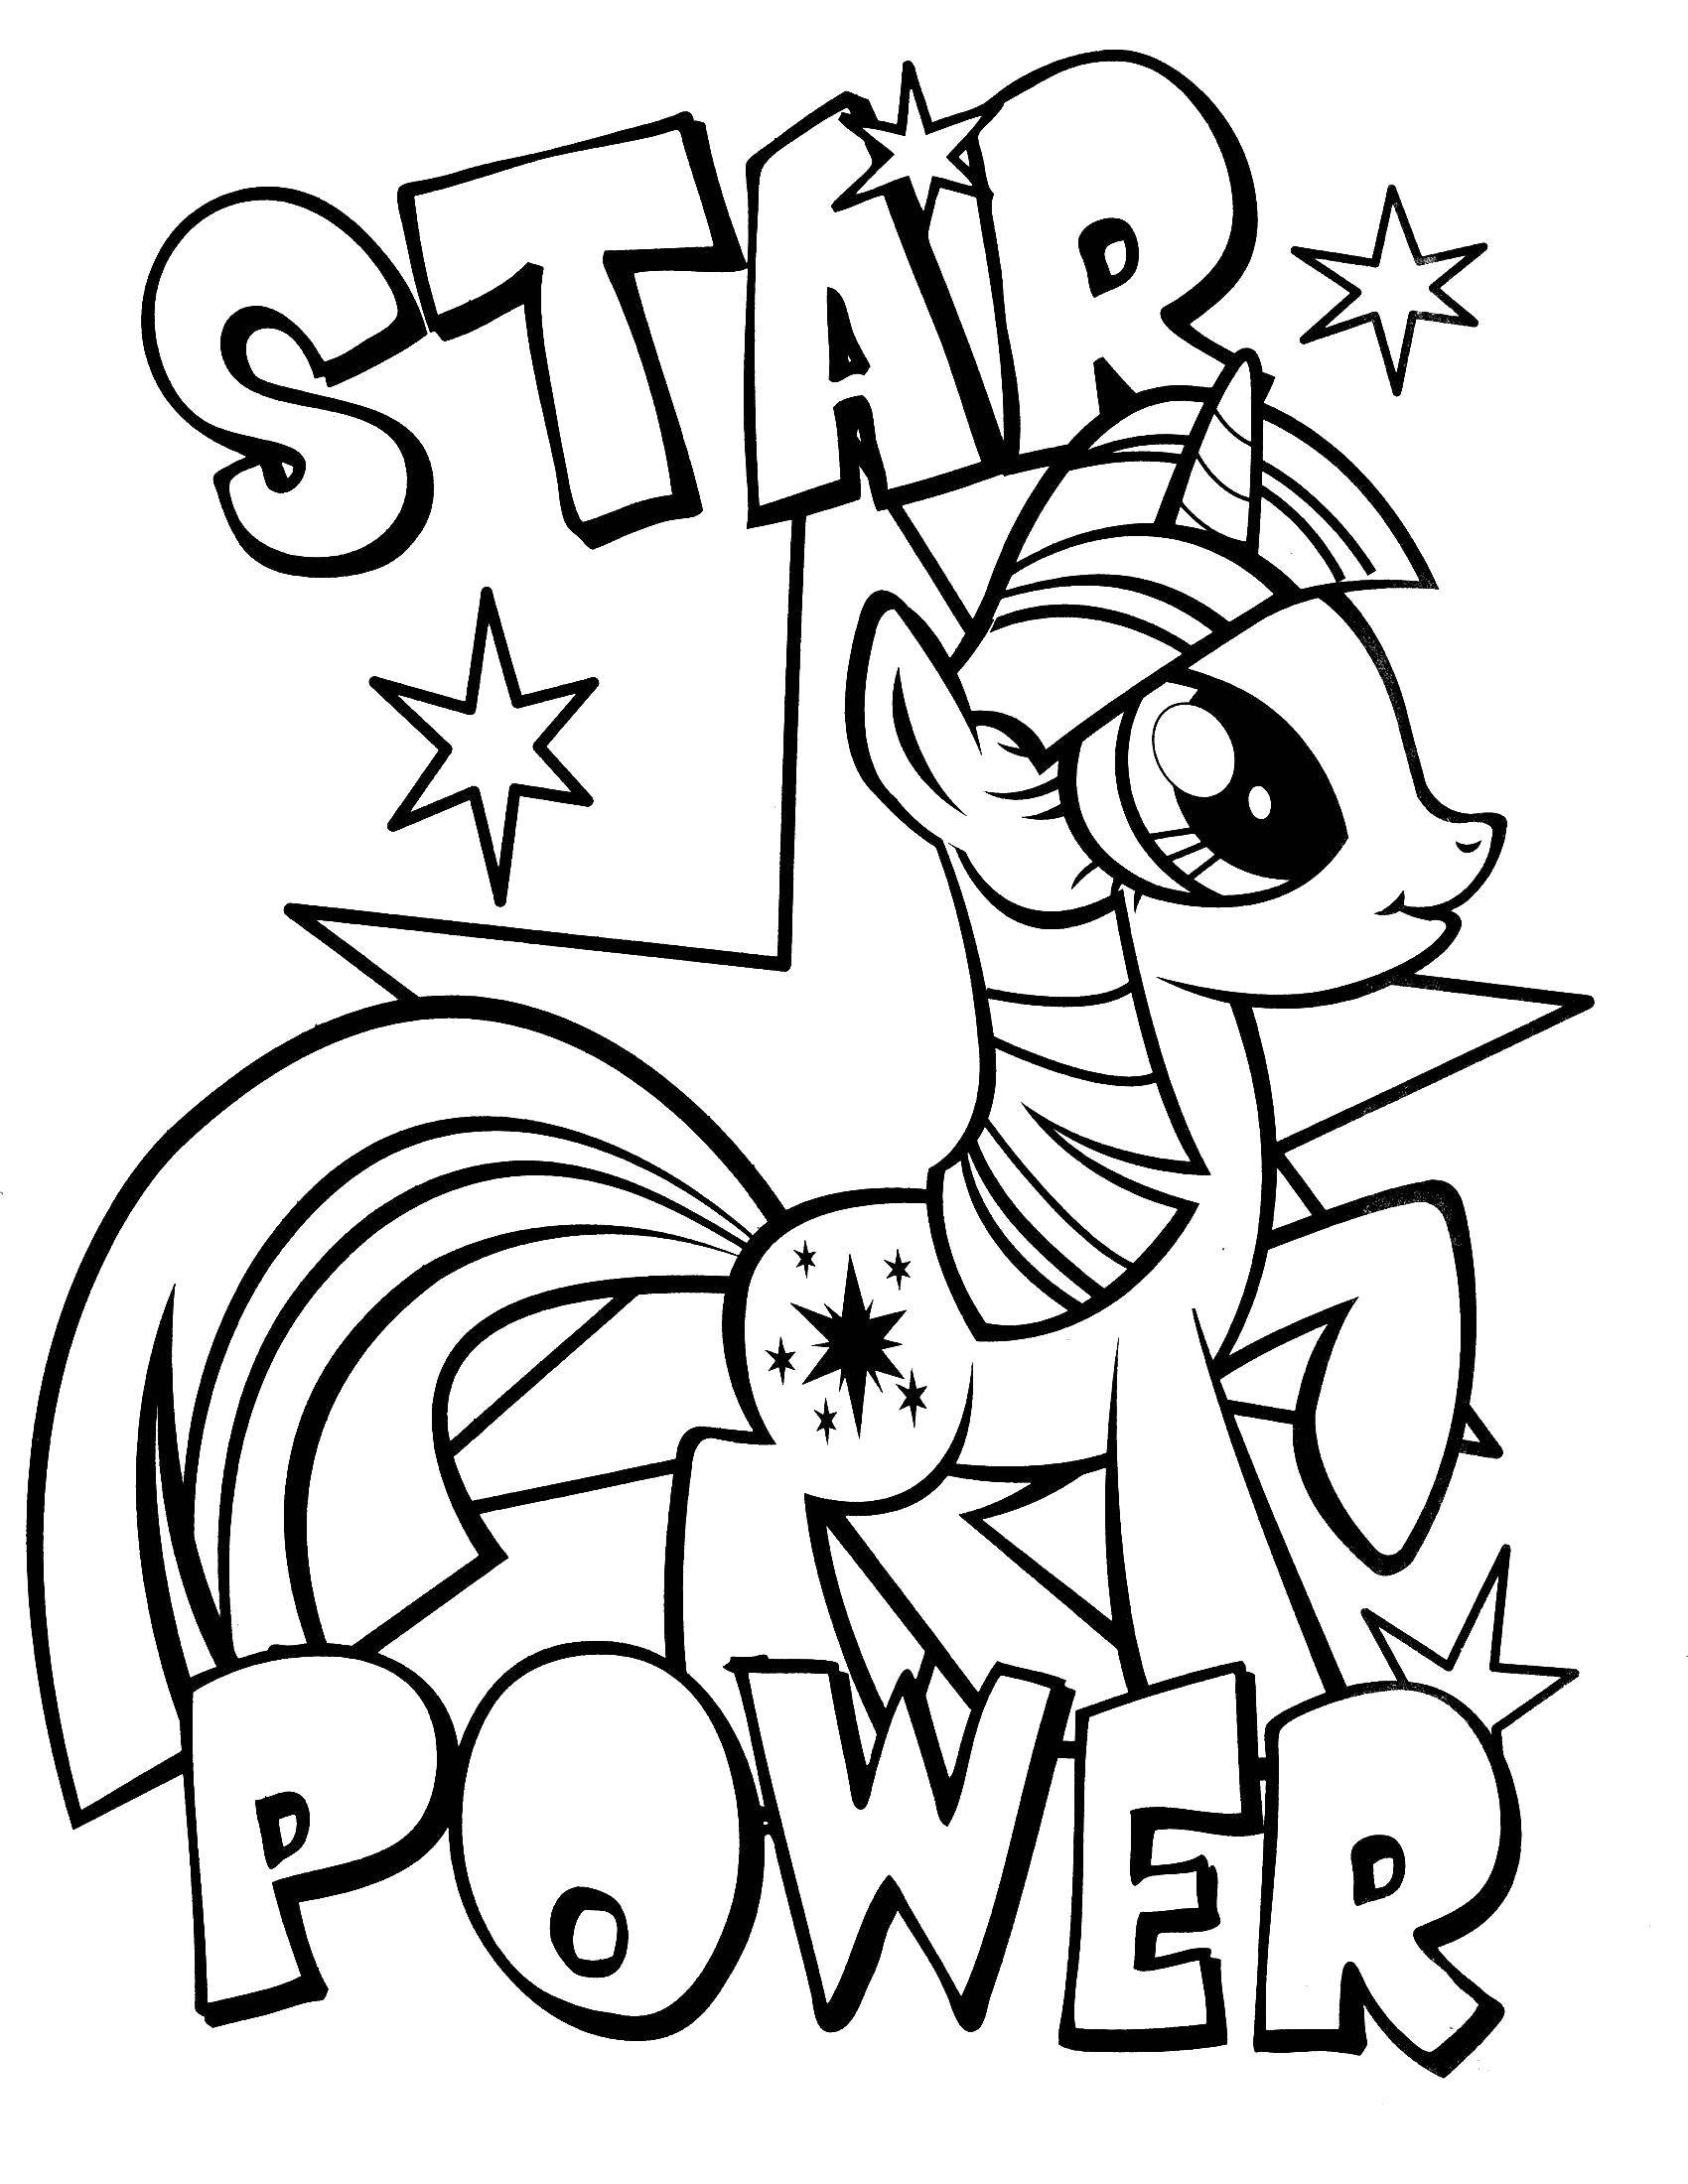 Coloring Star power Download Pony, My little pony,.  Print